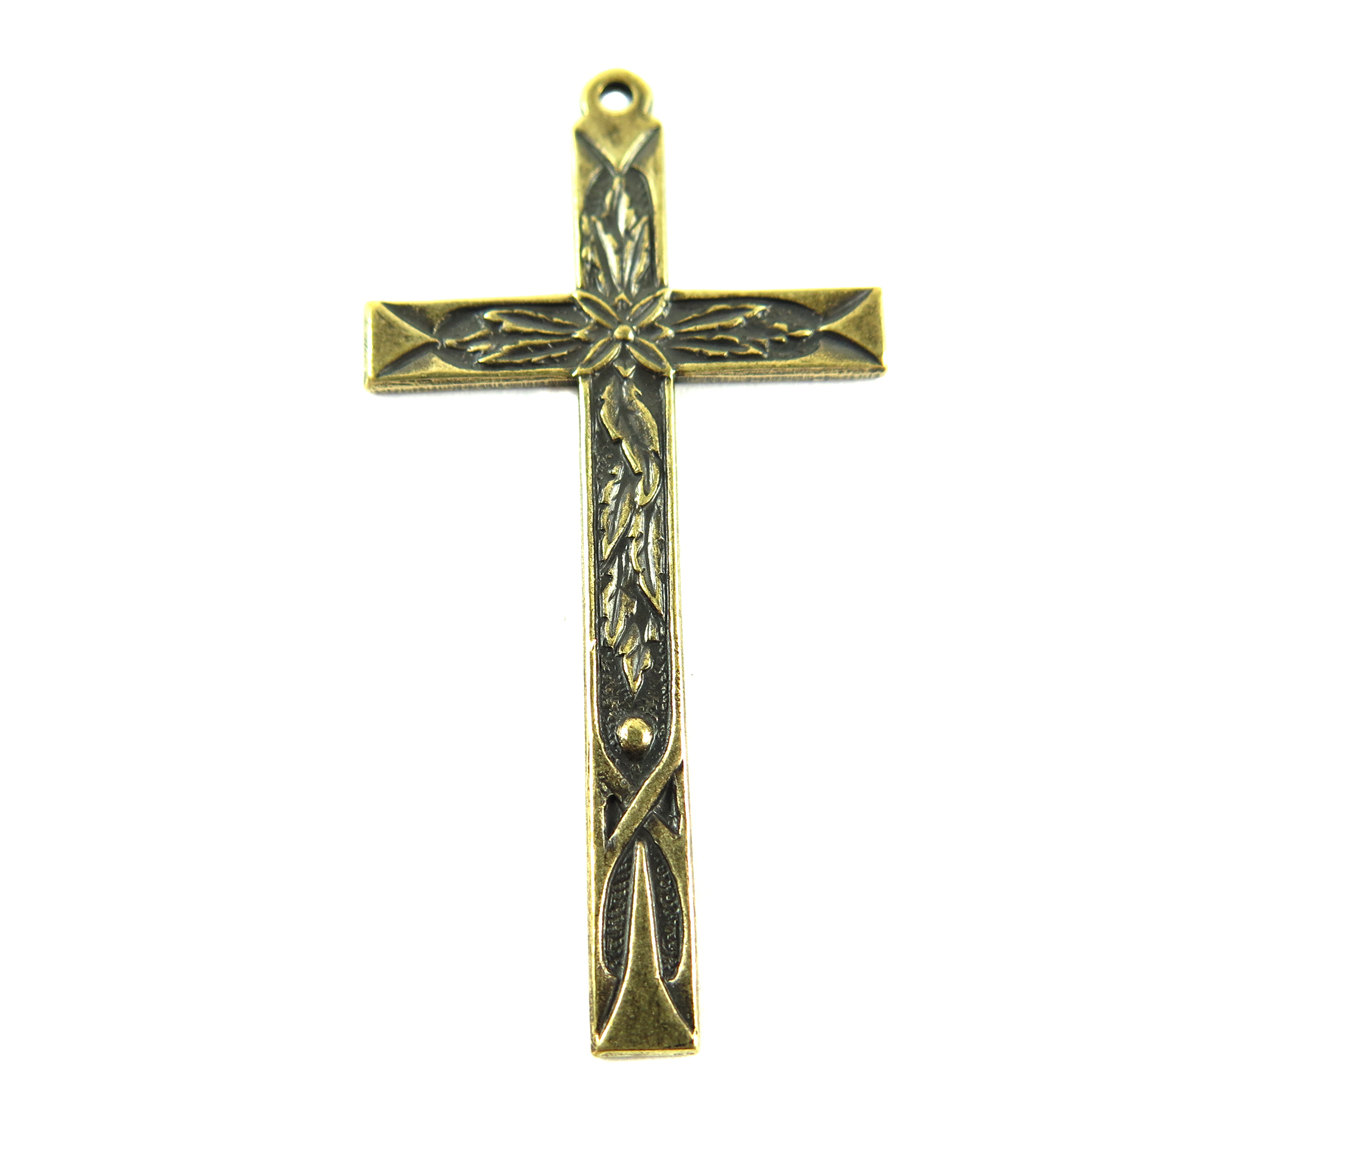 products wood obsessed prep decorative weeks decor cross initial within alwd ships